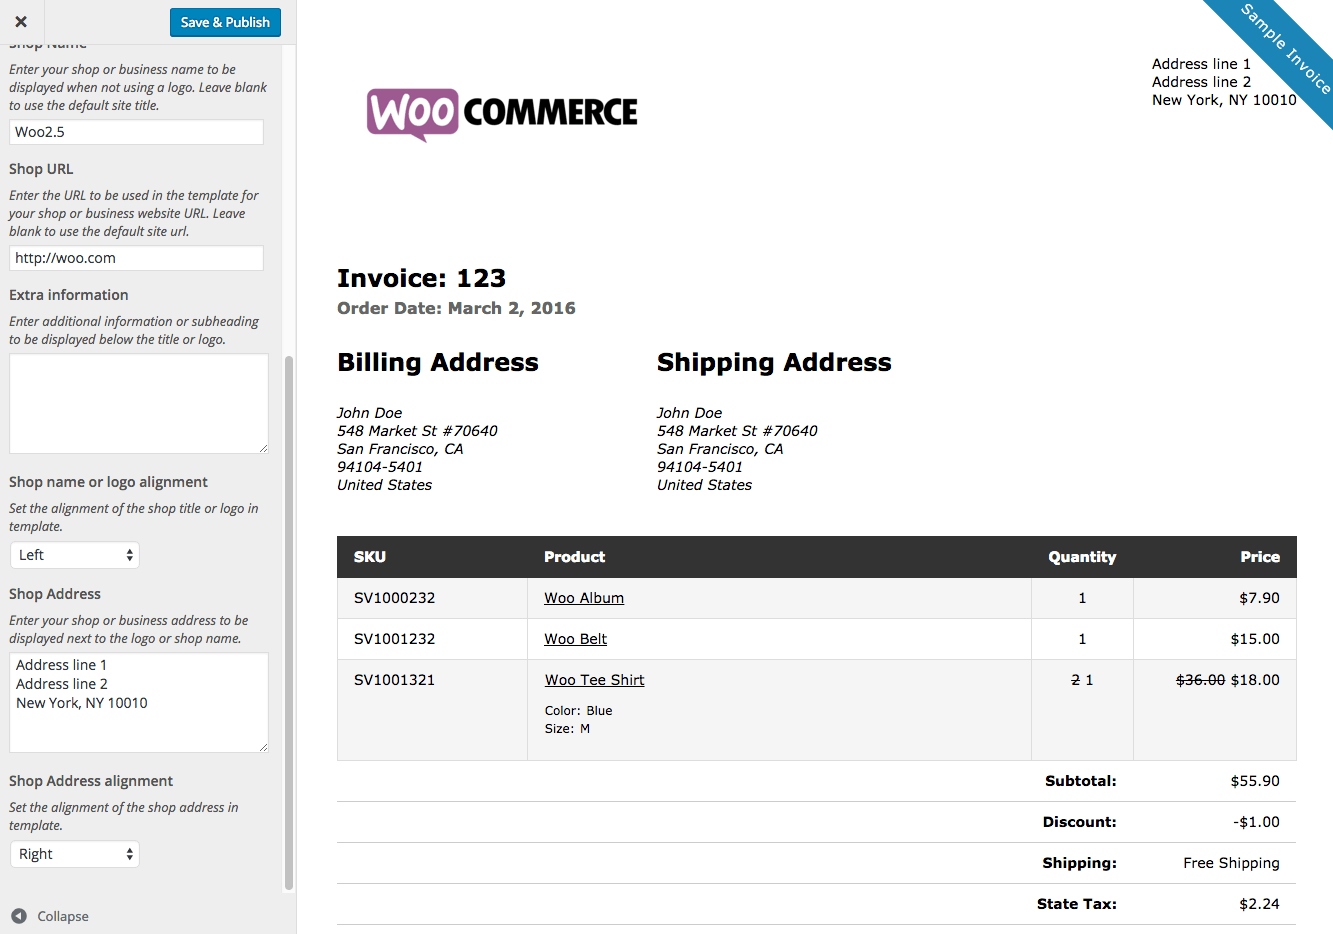 Maidofhonortoastus  Picturesque Woocommerce Print Invoices Amp Packing Lists  Woocommerce Docs With Lovable Woocommerce Print Invoices  Packing Lists Customizer With Beautiful Photography Invoice Sample Also Boat Invoice Prices In Addition Trucking Invoice Template And Difference Between Invoice And Msrp As Well As Invoices And Estimates Additionally Requirements Of A Vat Invoice From Docswoocommercecom With Maidofhonortoastus  Lovable Woocommerce Print Invoices Amp Packing Lists  Woocommerce Docs With Beautiful Woocommerce Print Invoices  Packing Lists Customizer And Picturesque Photography Invoice Sample Also Boat Invoice Prices In Addition Trucking Invoice Template From Docswoocommercecom